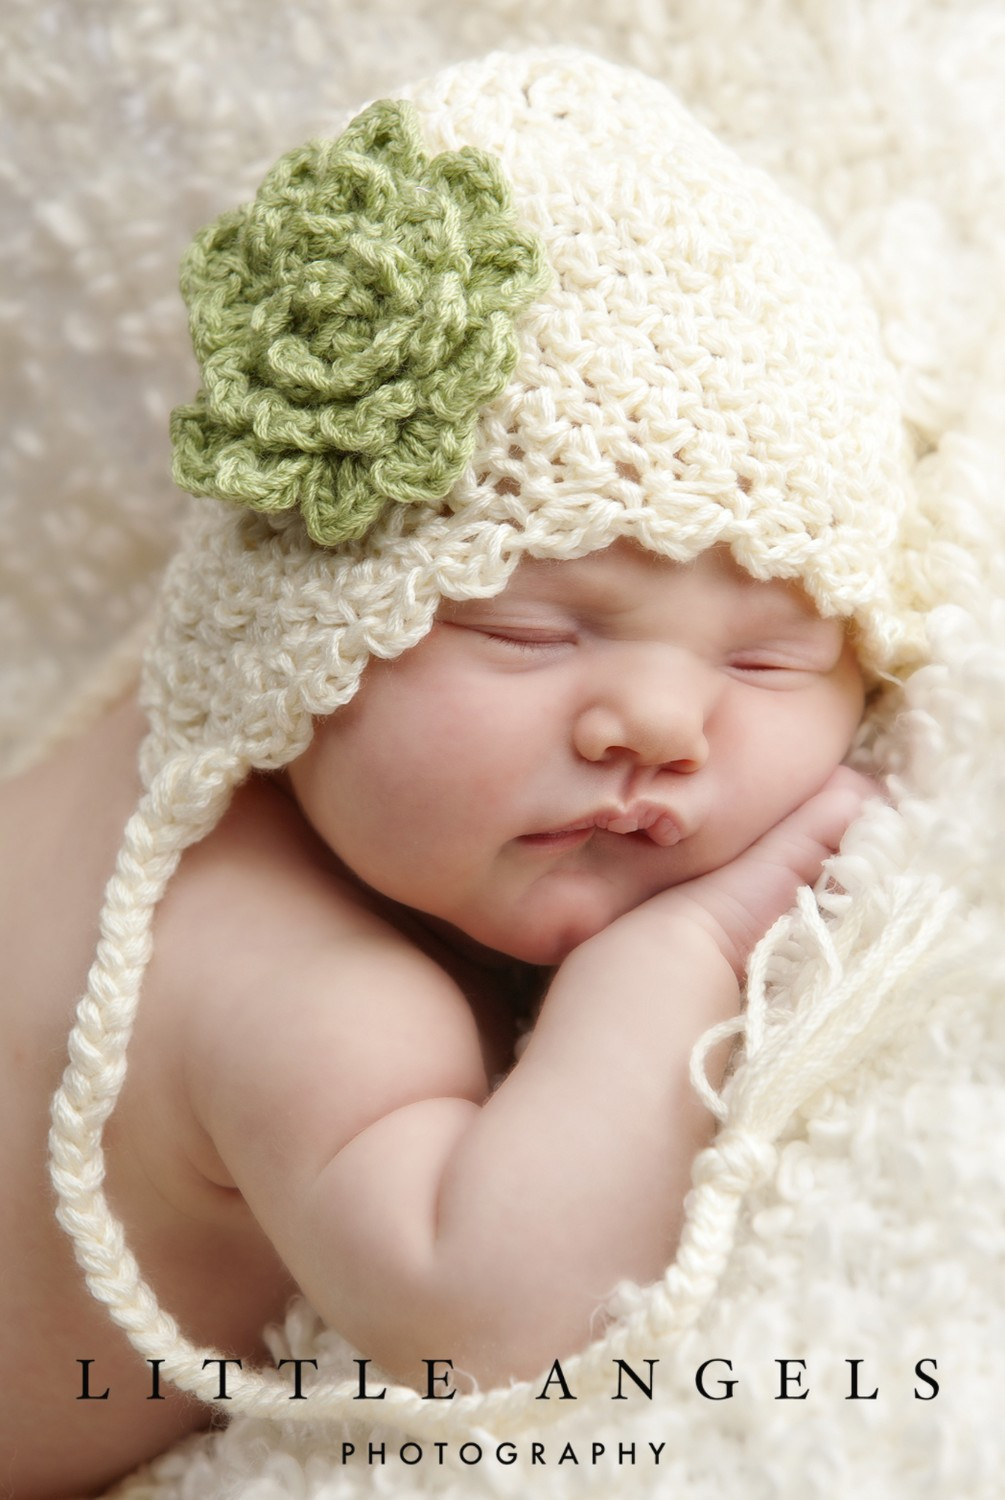 Free Crochet Baby Patterns Awesome Crochet Newborn Baby Hats with Pumpkin Cupcake Pattern Of Delightful 49 Ideas Free Crochet Baby Patterns